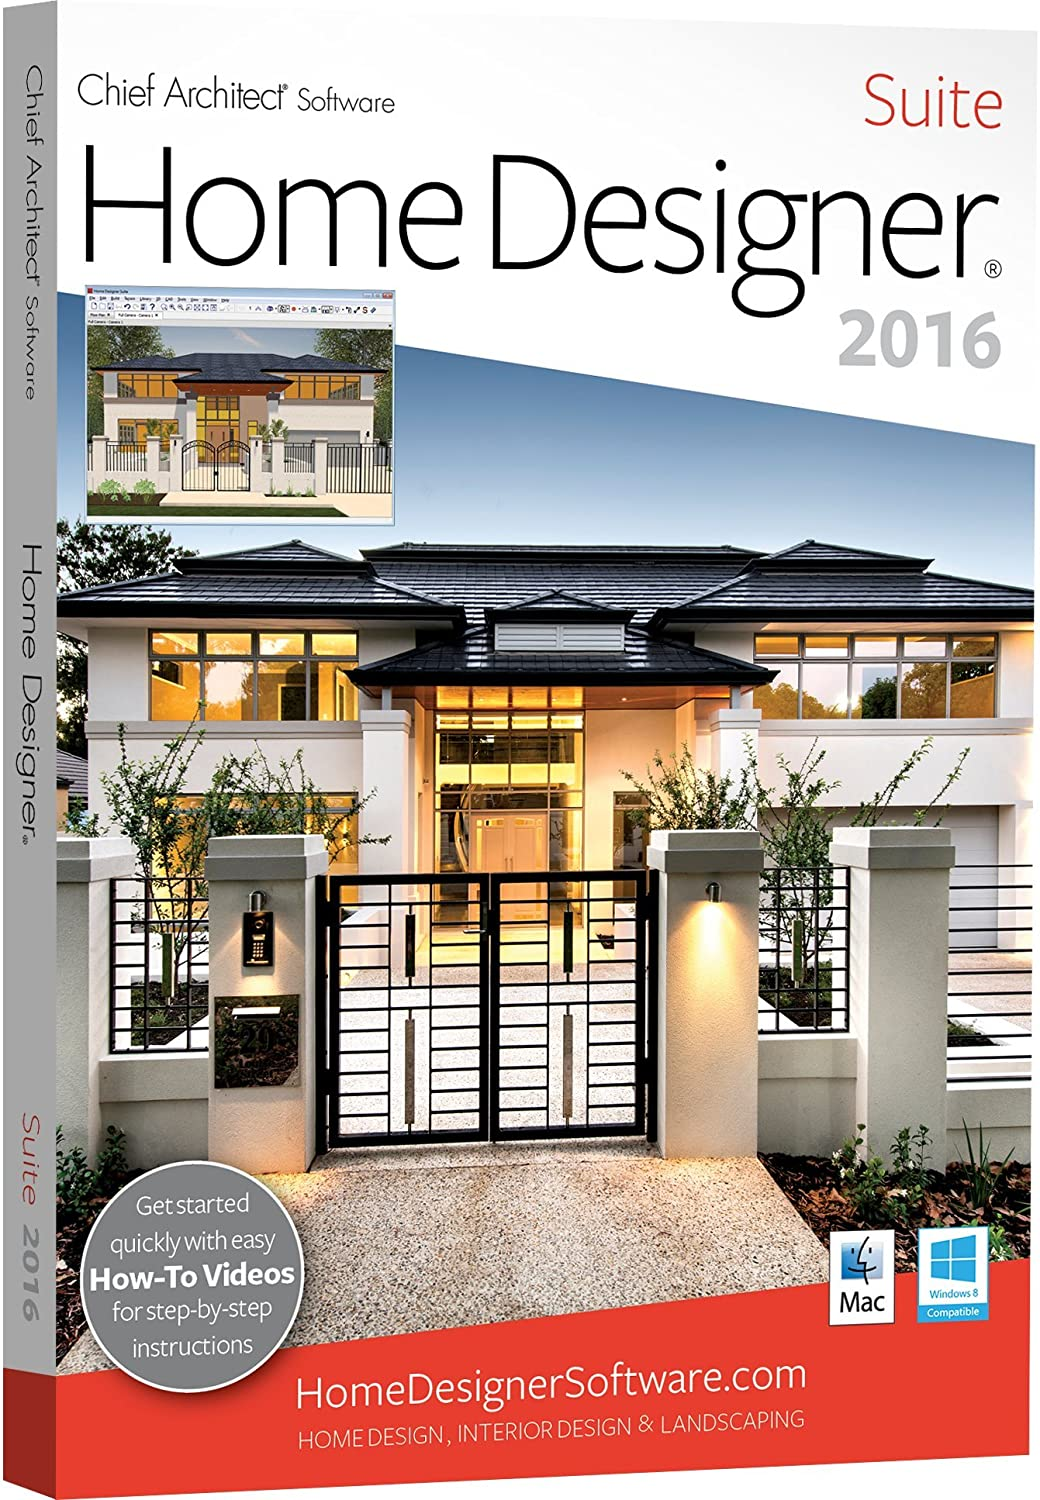 Home Designer Suite 2016 PC Mac Amazoncouk Software